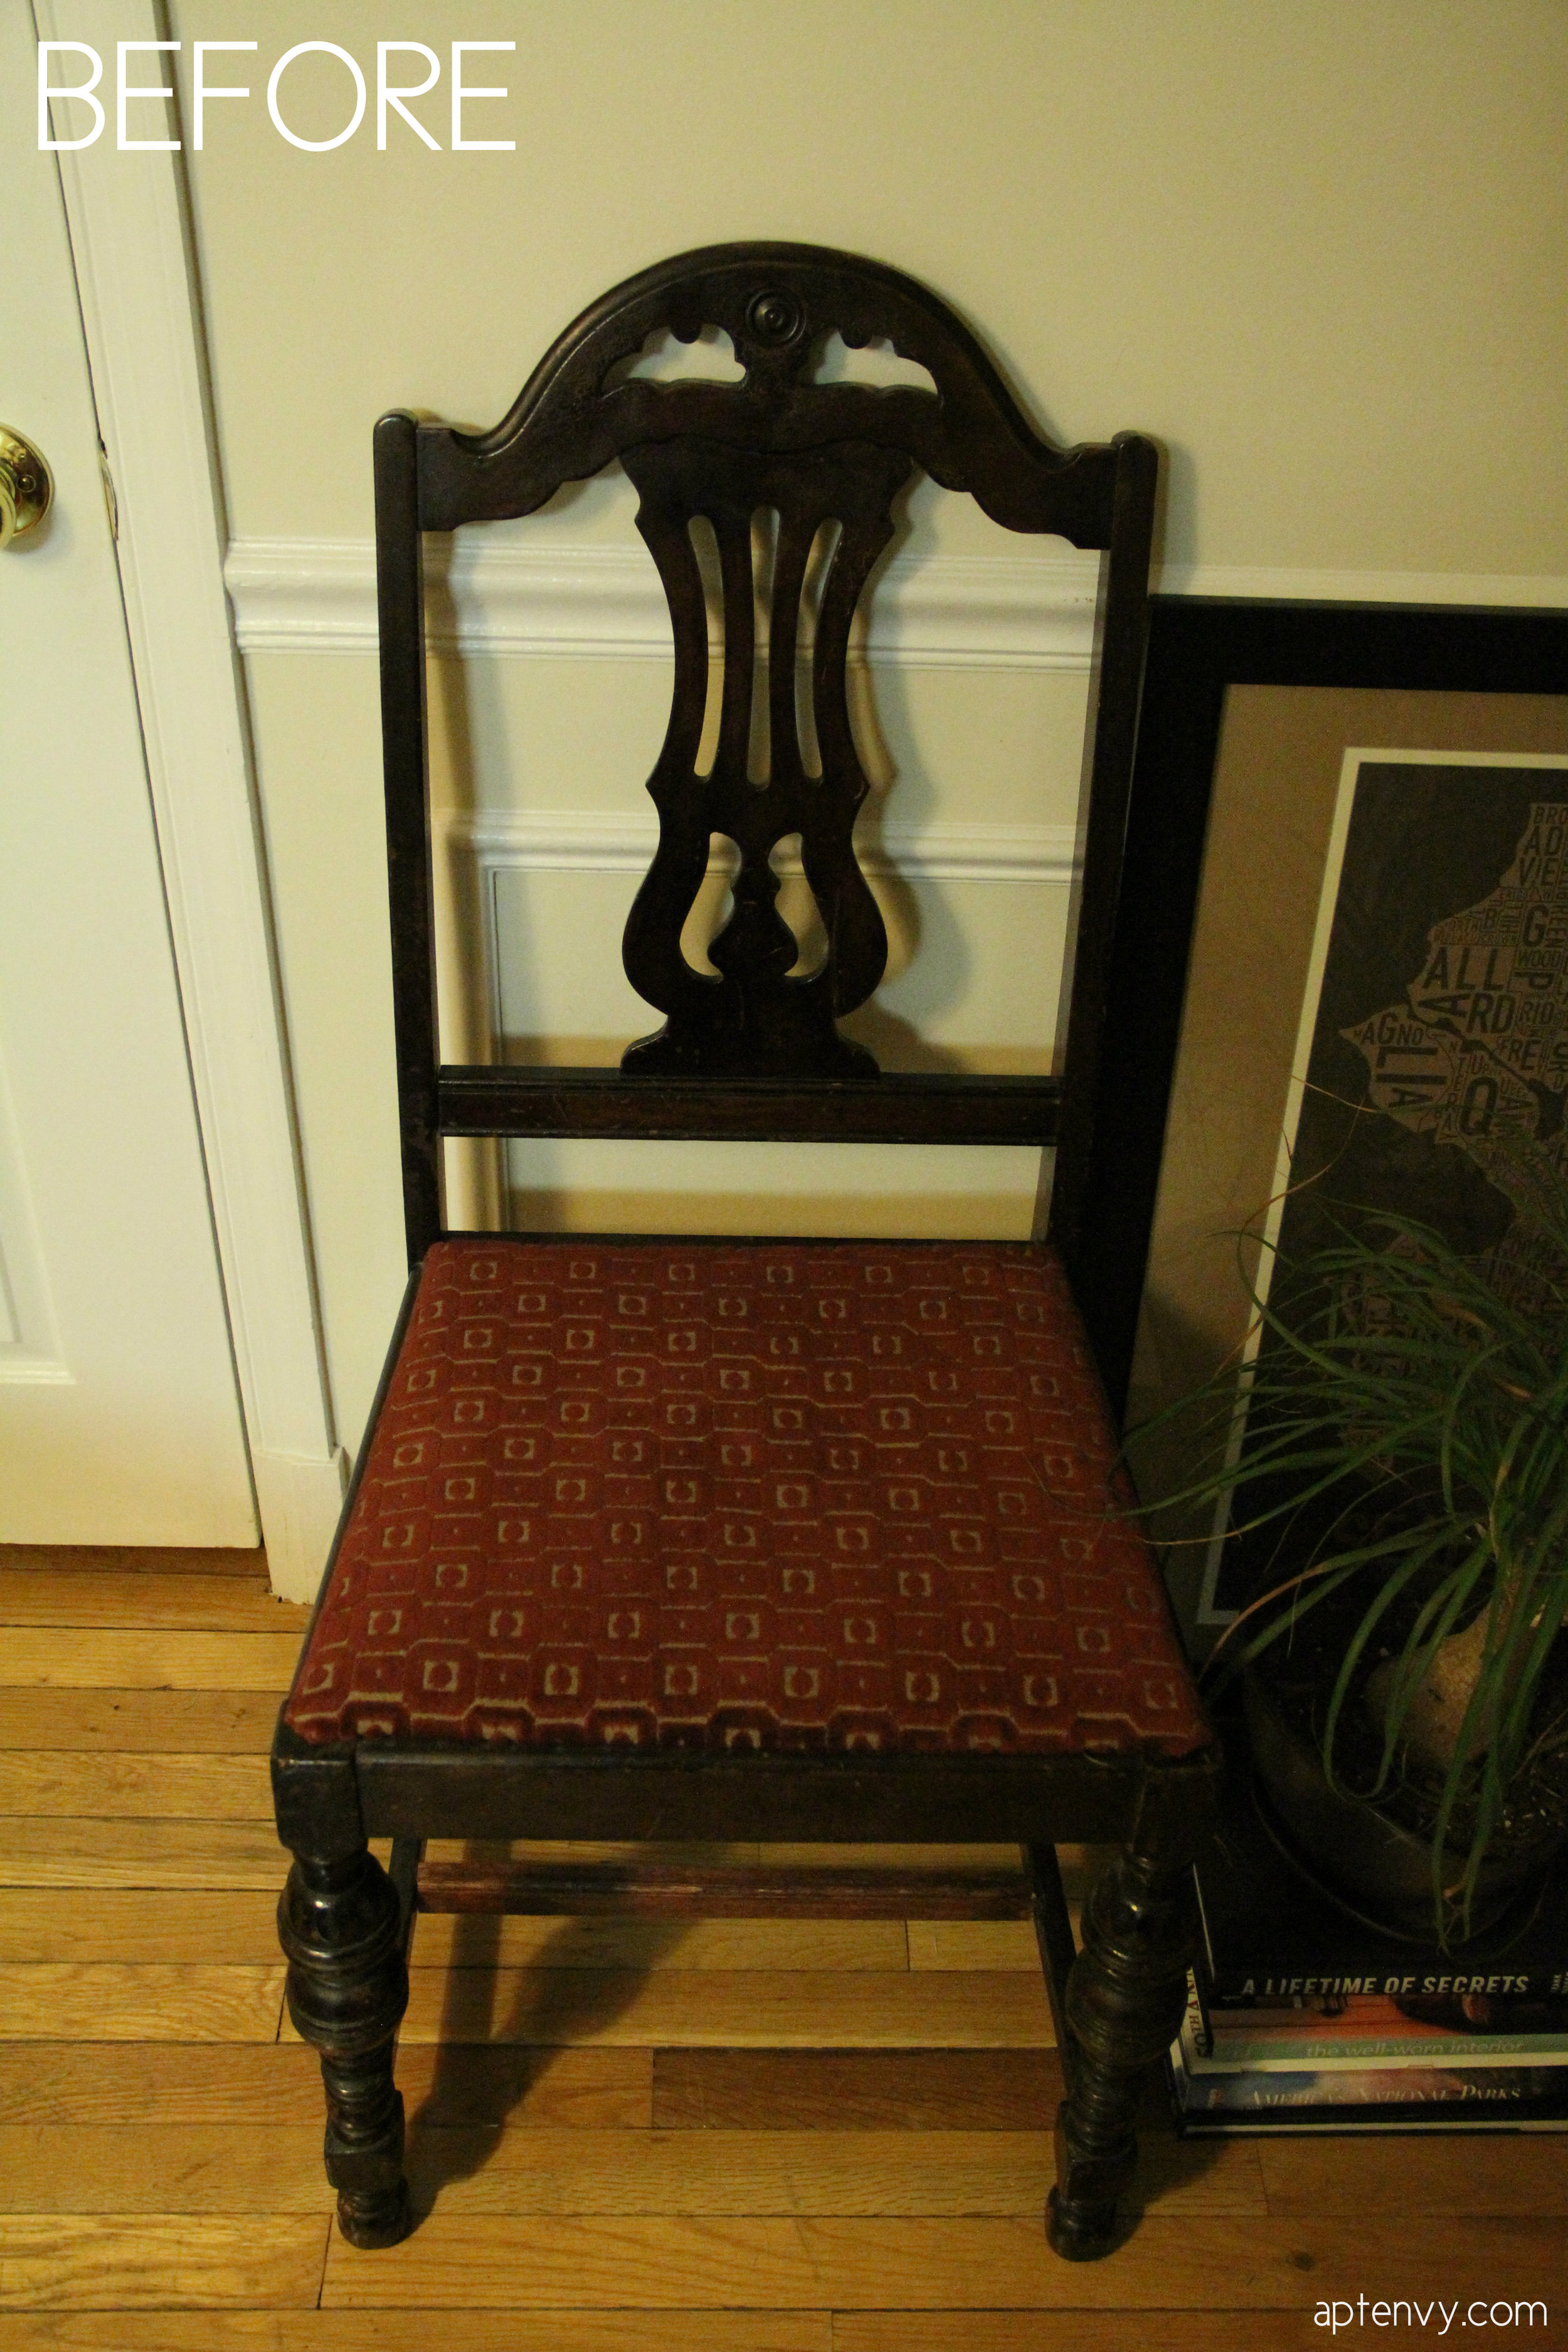 DINING CHAIR - BEFORE